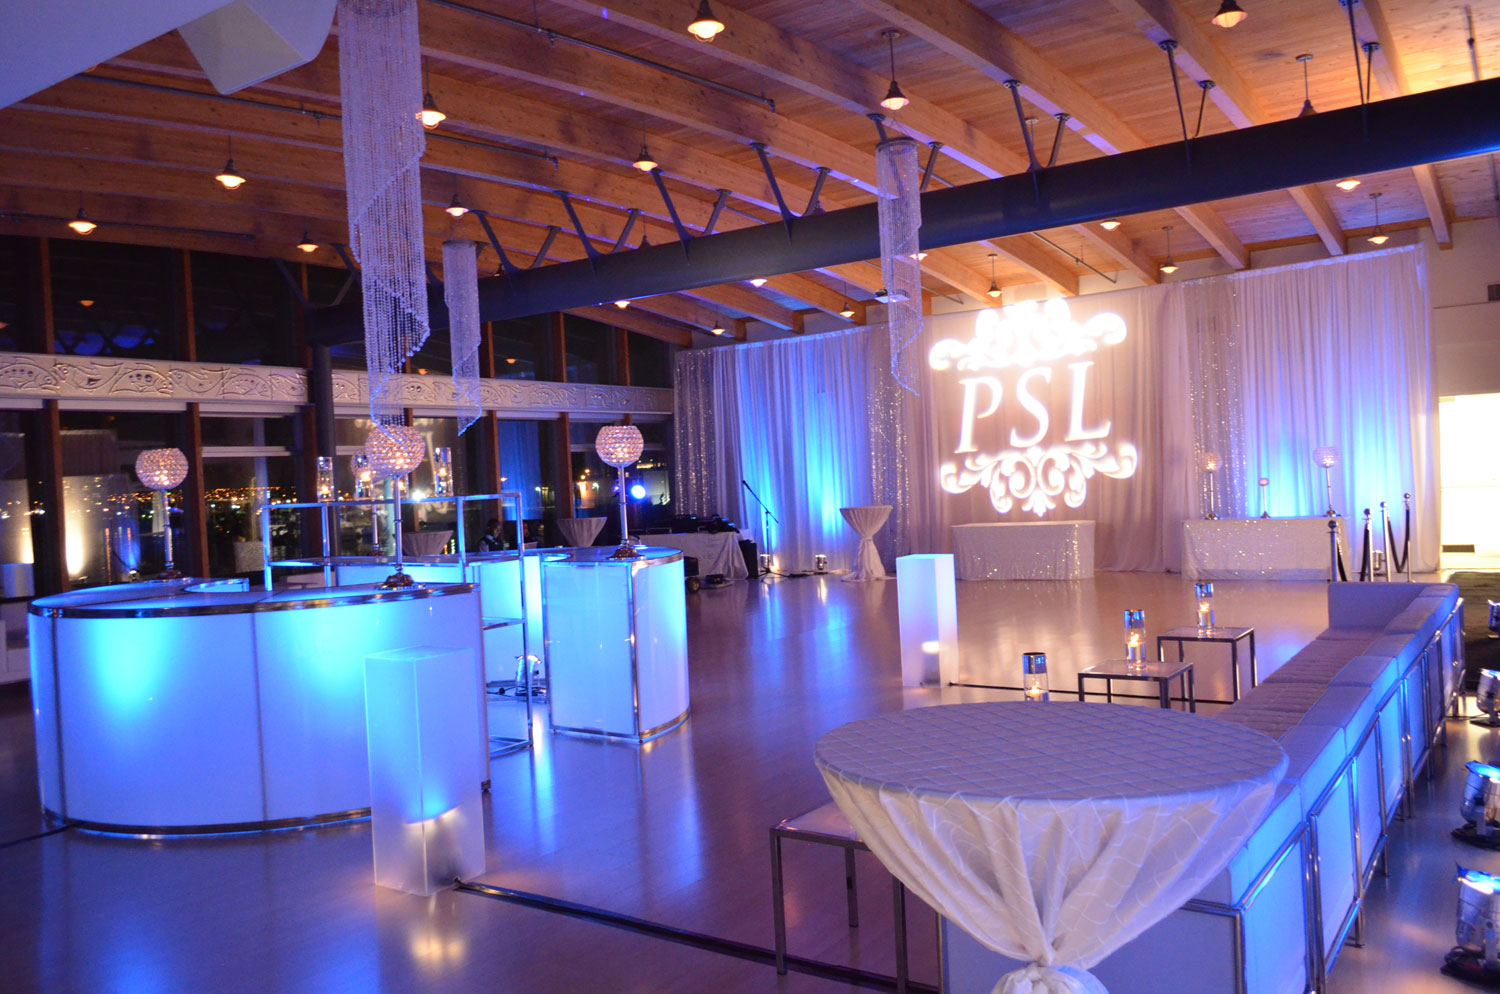 UBC Boathouse Lounge party - corporate event decor - birthday party - draping - lighting - furniture - gobo lighting